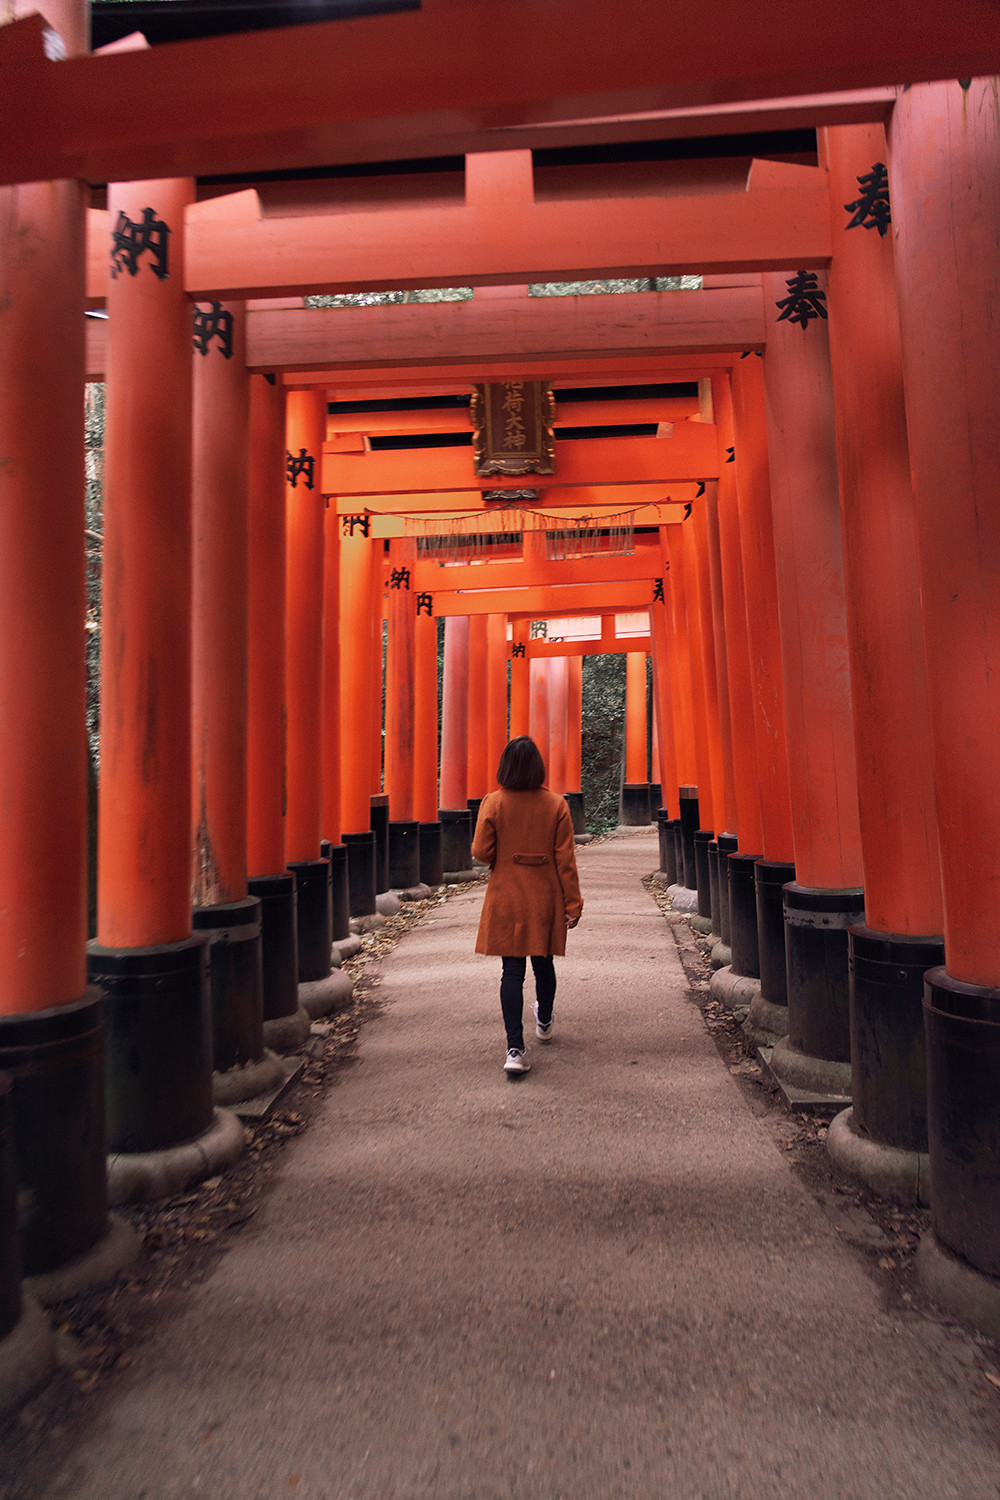 31kyoto-fushimi-inari-torii-shrine-architecture-japan-travel